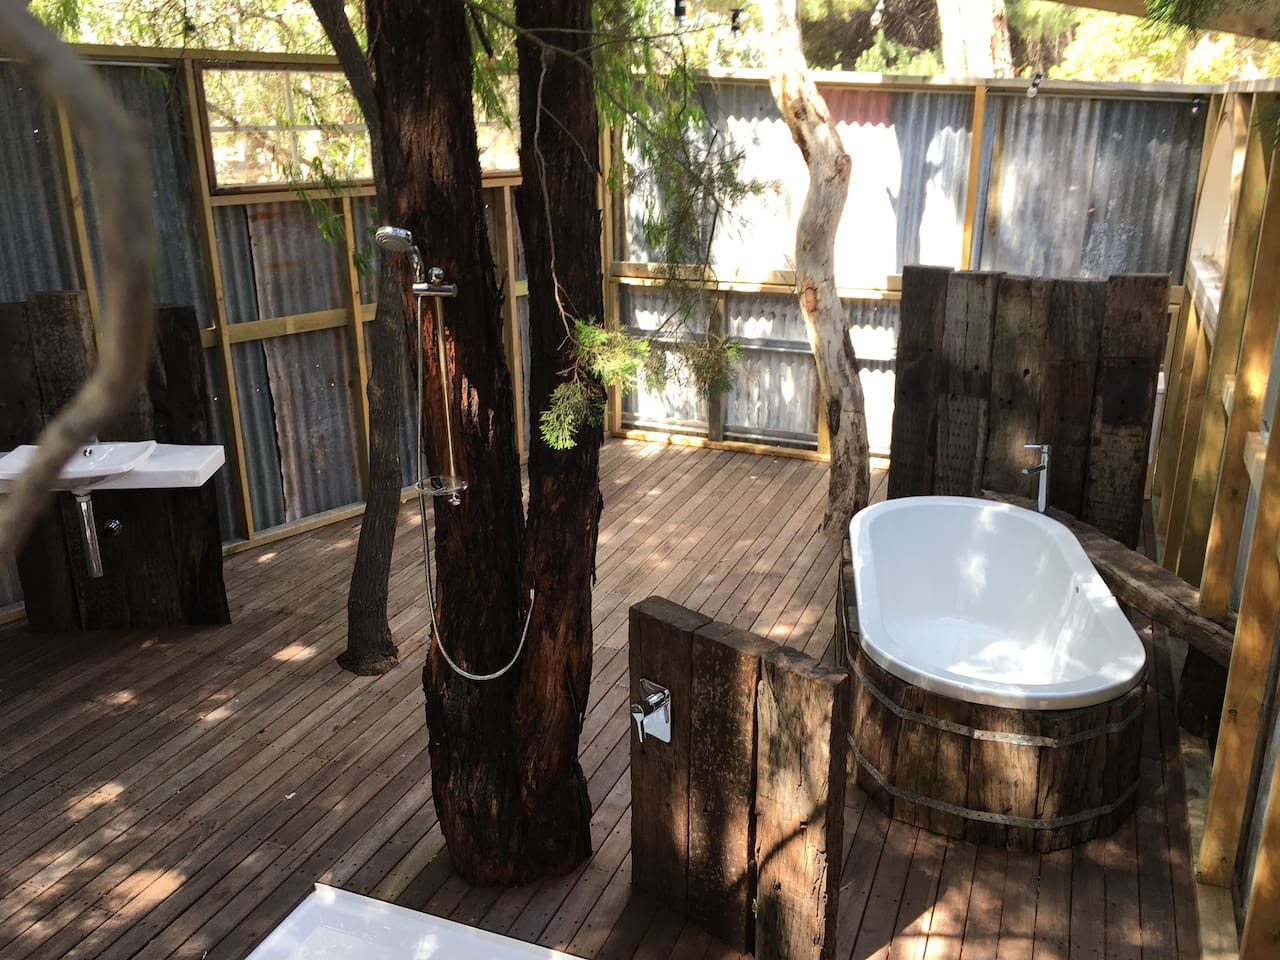 Australia's Coolest Outdoor Bathroom - Soak under the Stars and Shower Surrounded by Trees and Nature